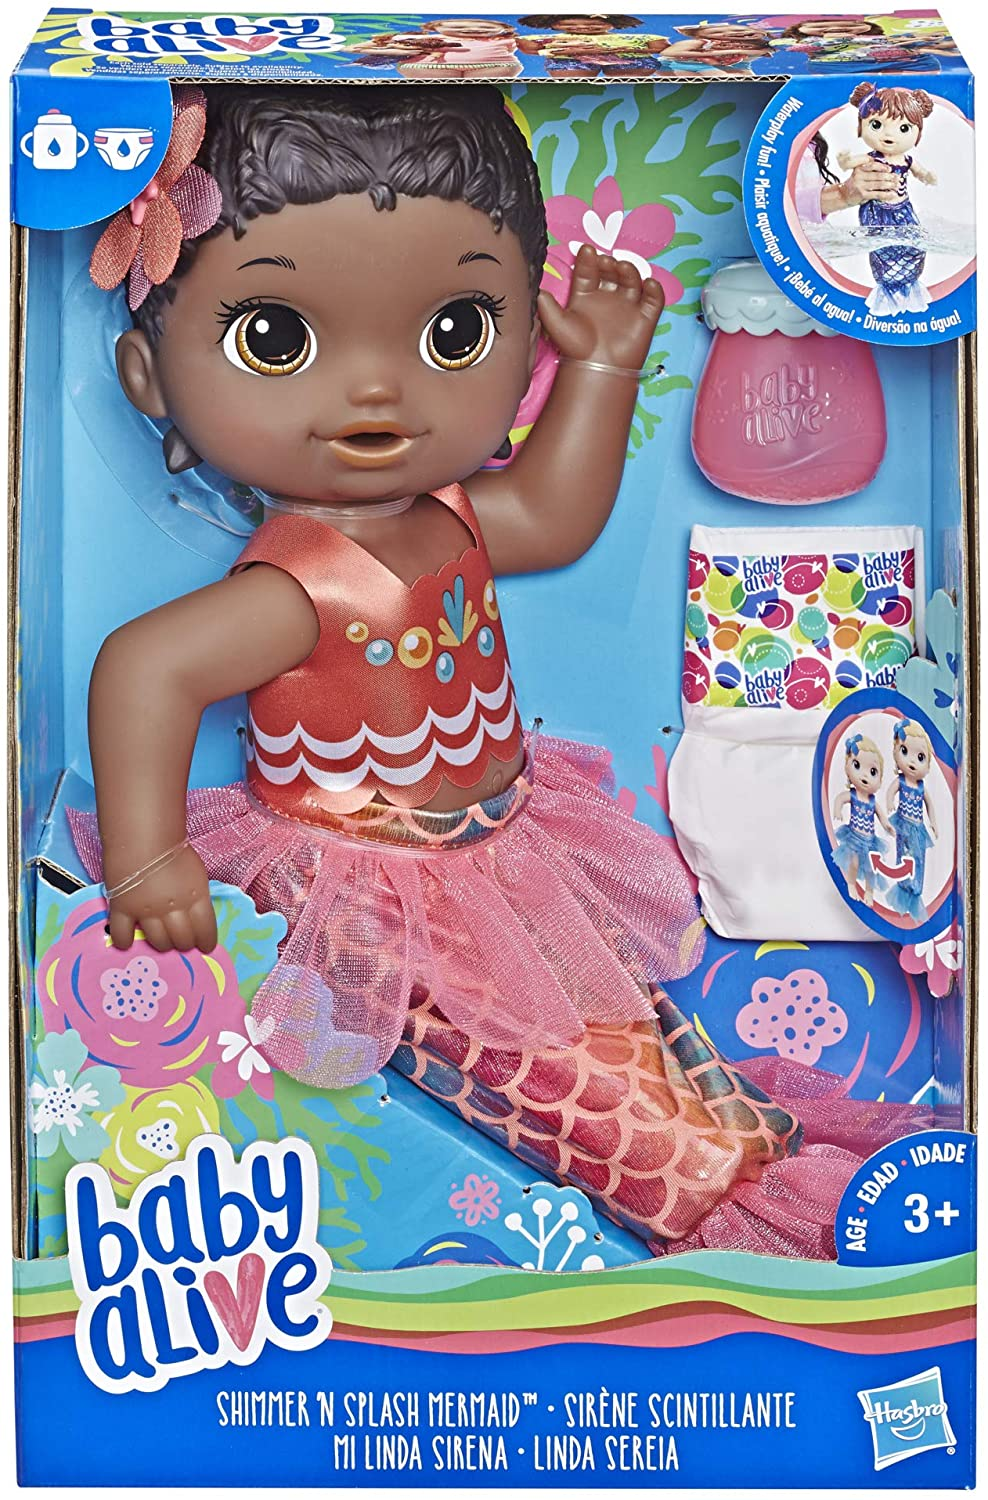 Baby Alive Shimmer 'n Splash Mermaid (Black Hair) - Sirene